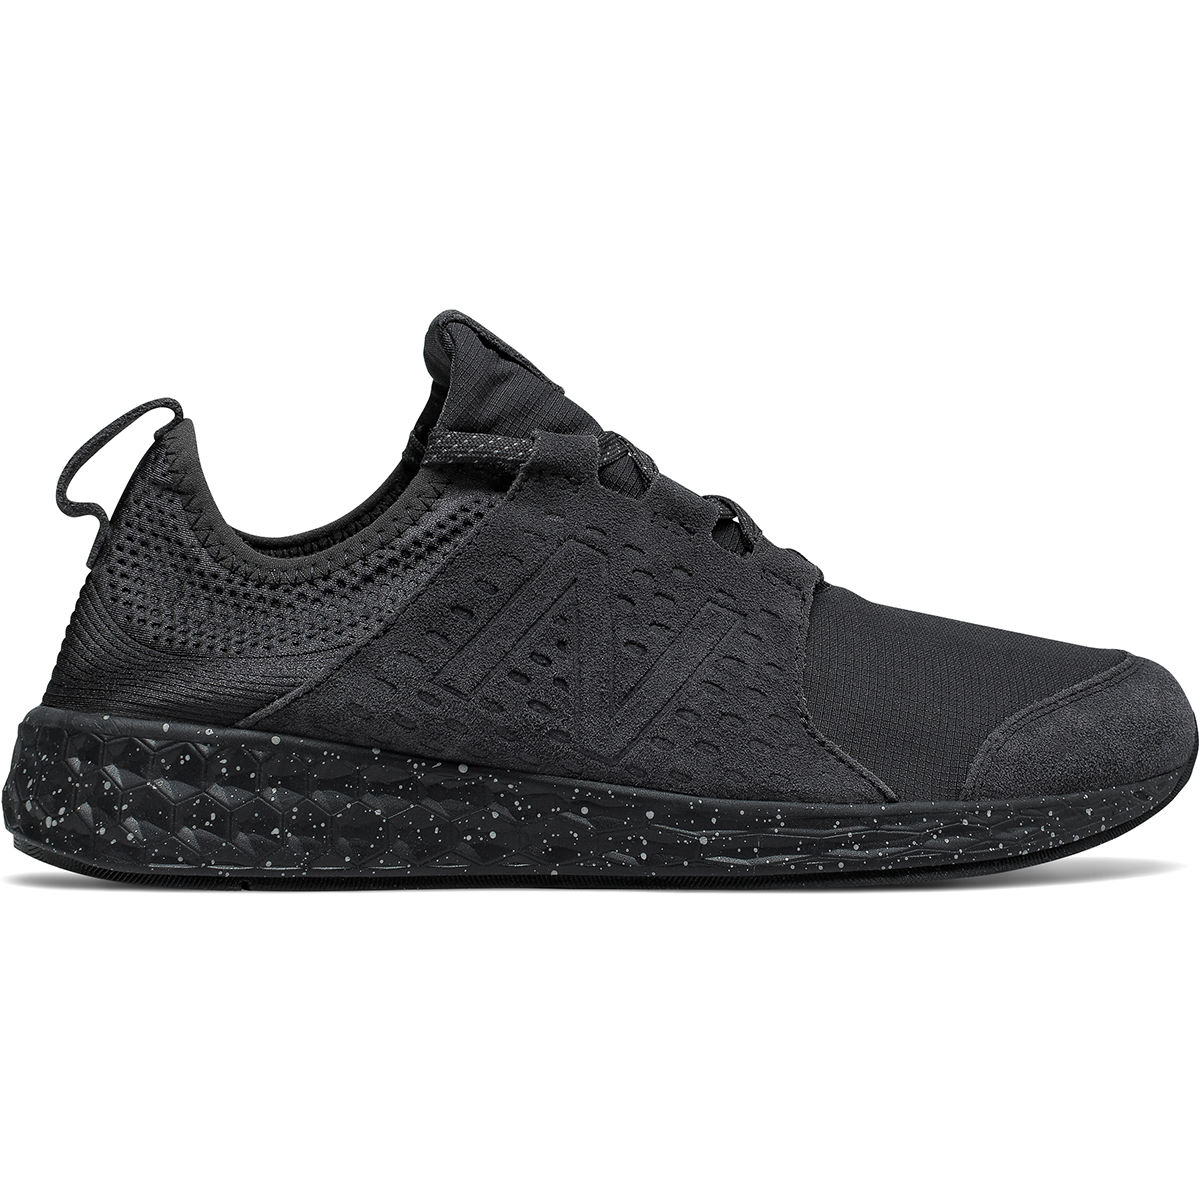 Chaussures New Balance Fresh Foam Cruz v1 - UK 11 Noir